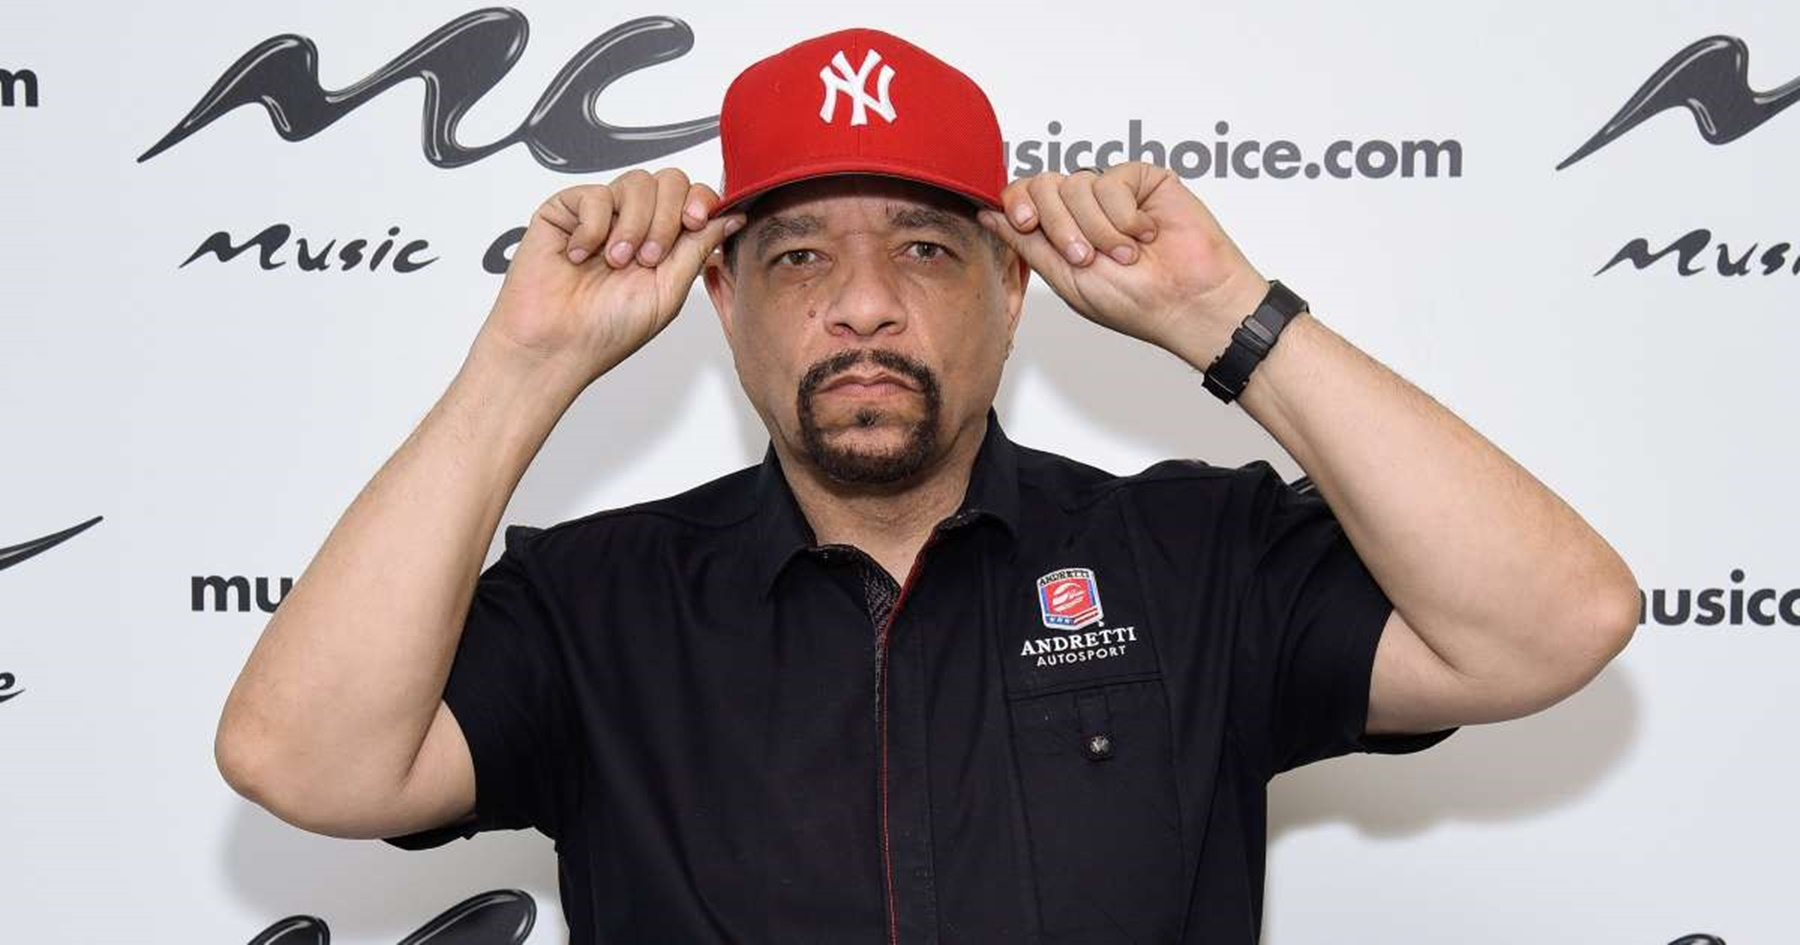 """""""ice-t-claims-he-was-close-to-shooting-unmarked-amazon-driver-here-is-why-the-companys-response-missed-the-mark"""""""